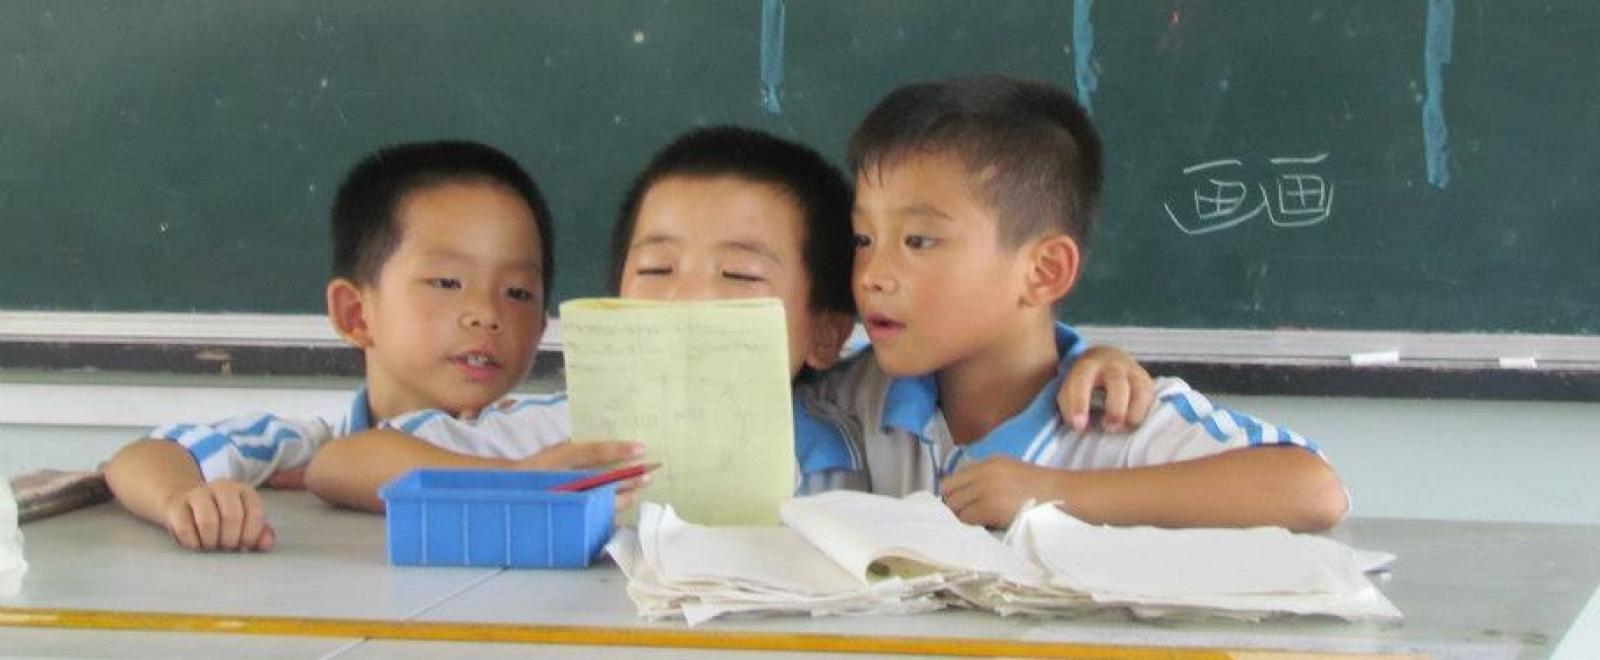 A Projects Abroad volunteer working with children in China listens to young boys reading aloud to improve their reading skills.